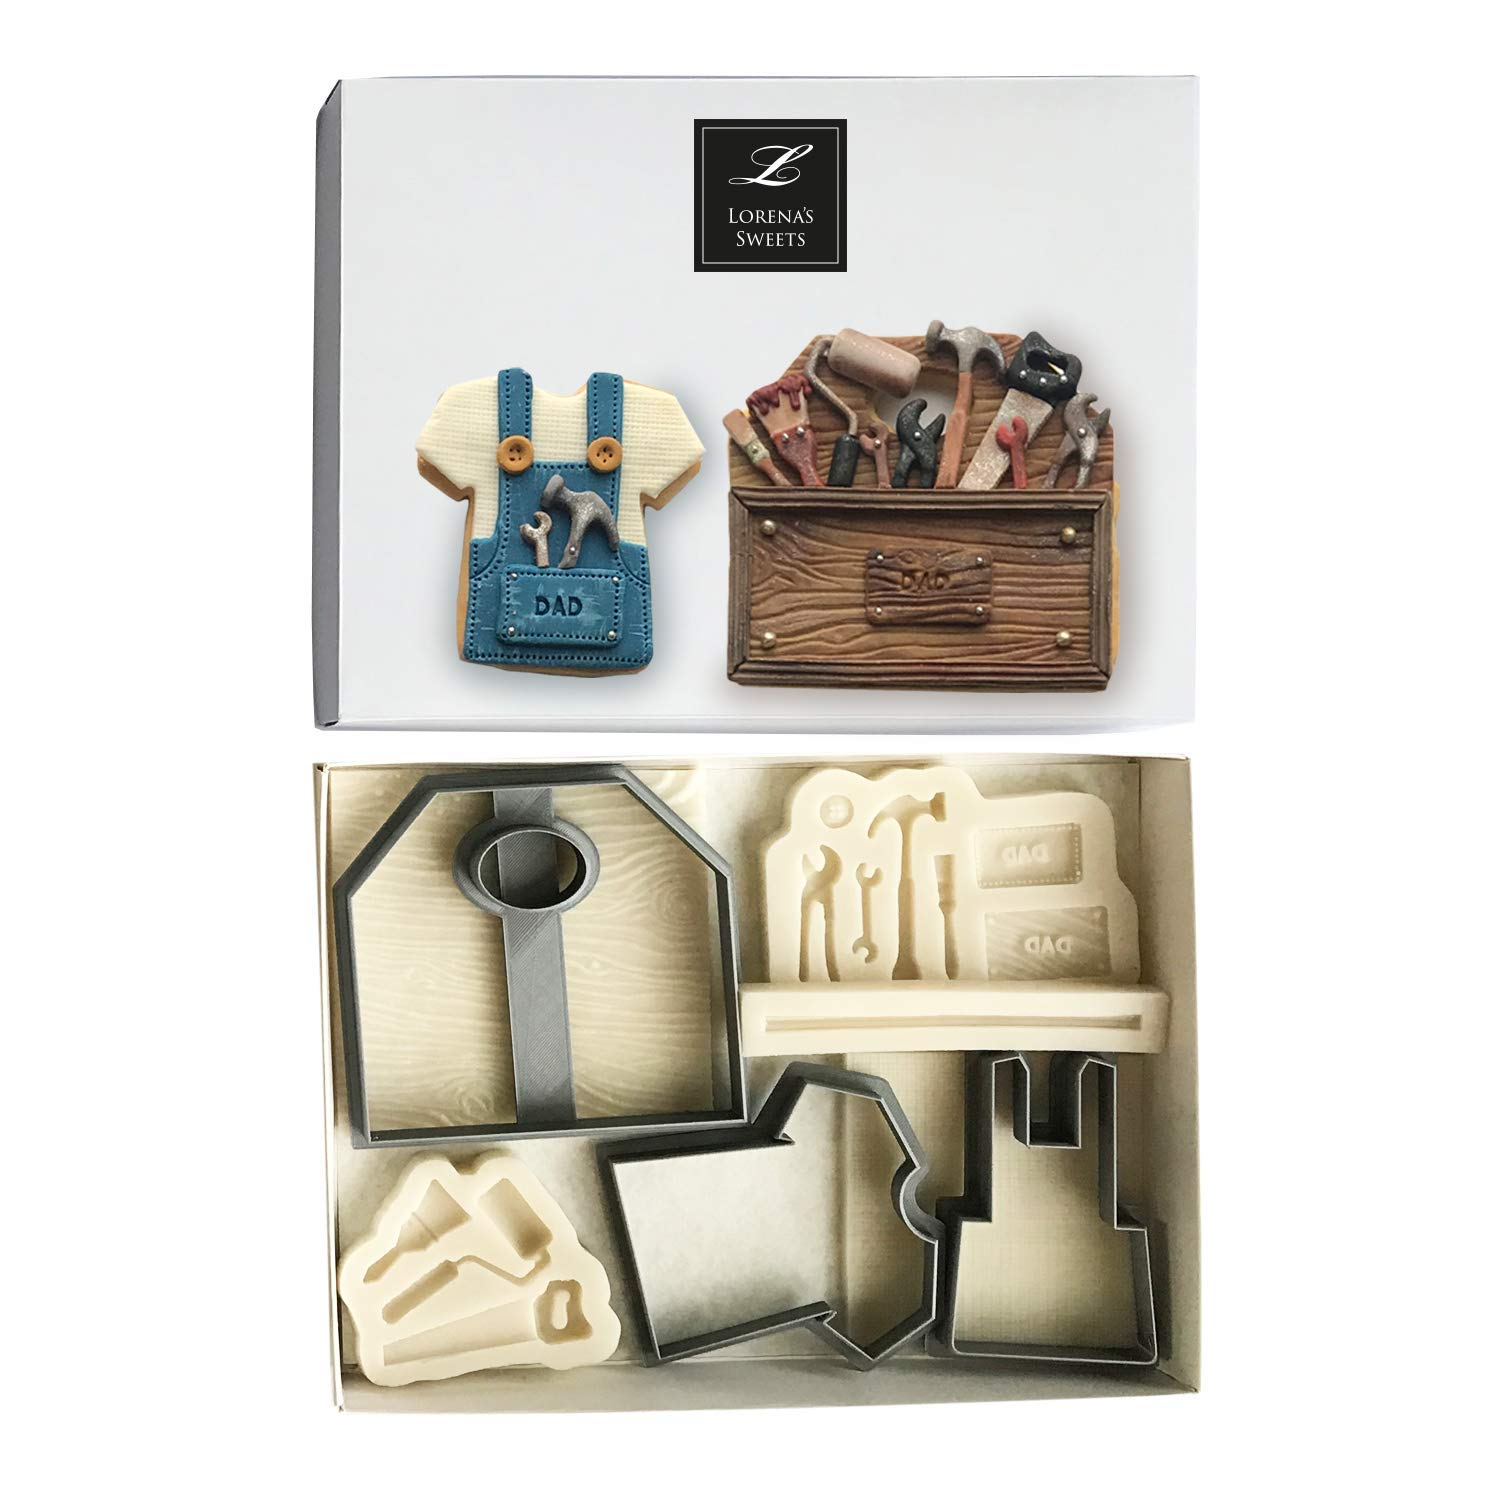 LORENA'S SWEETS Fondant cookie cutter kit Tool box and overall by Lorena´s Sweets (Image #5)